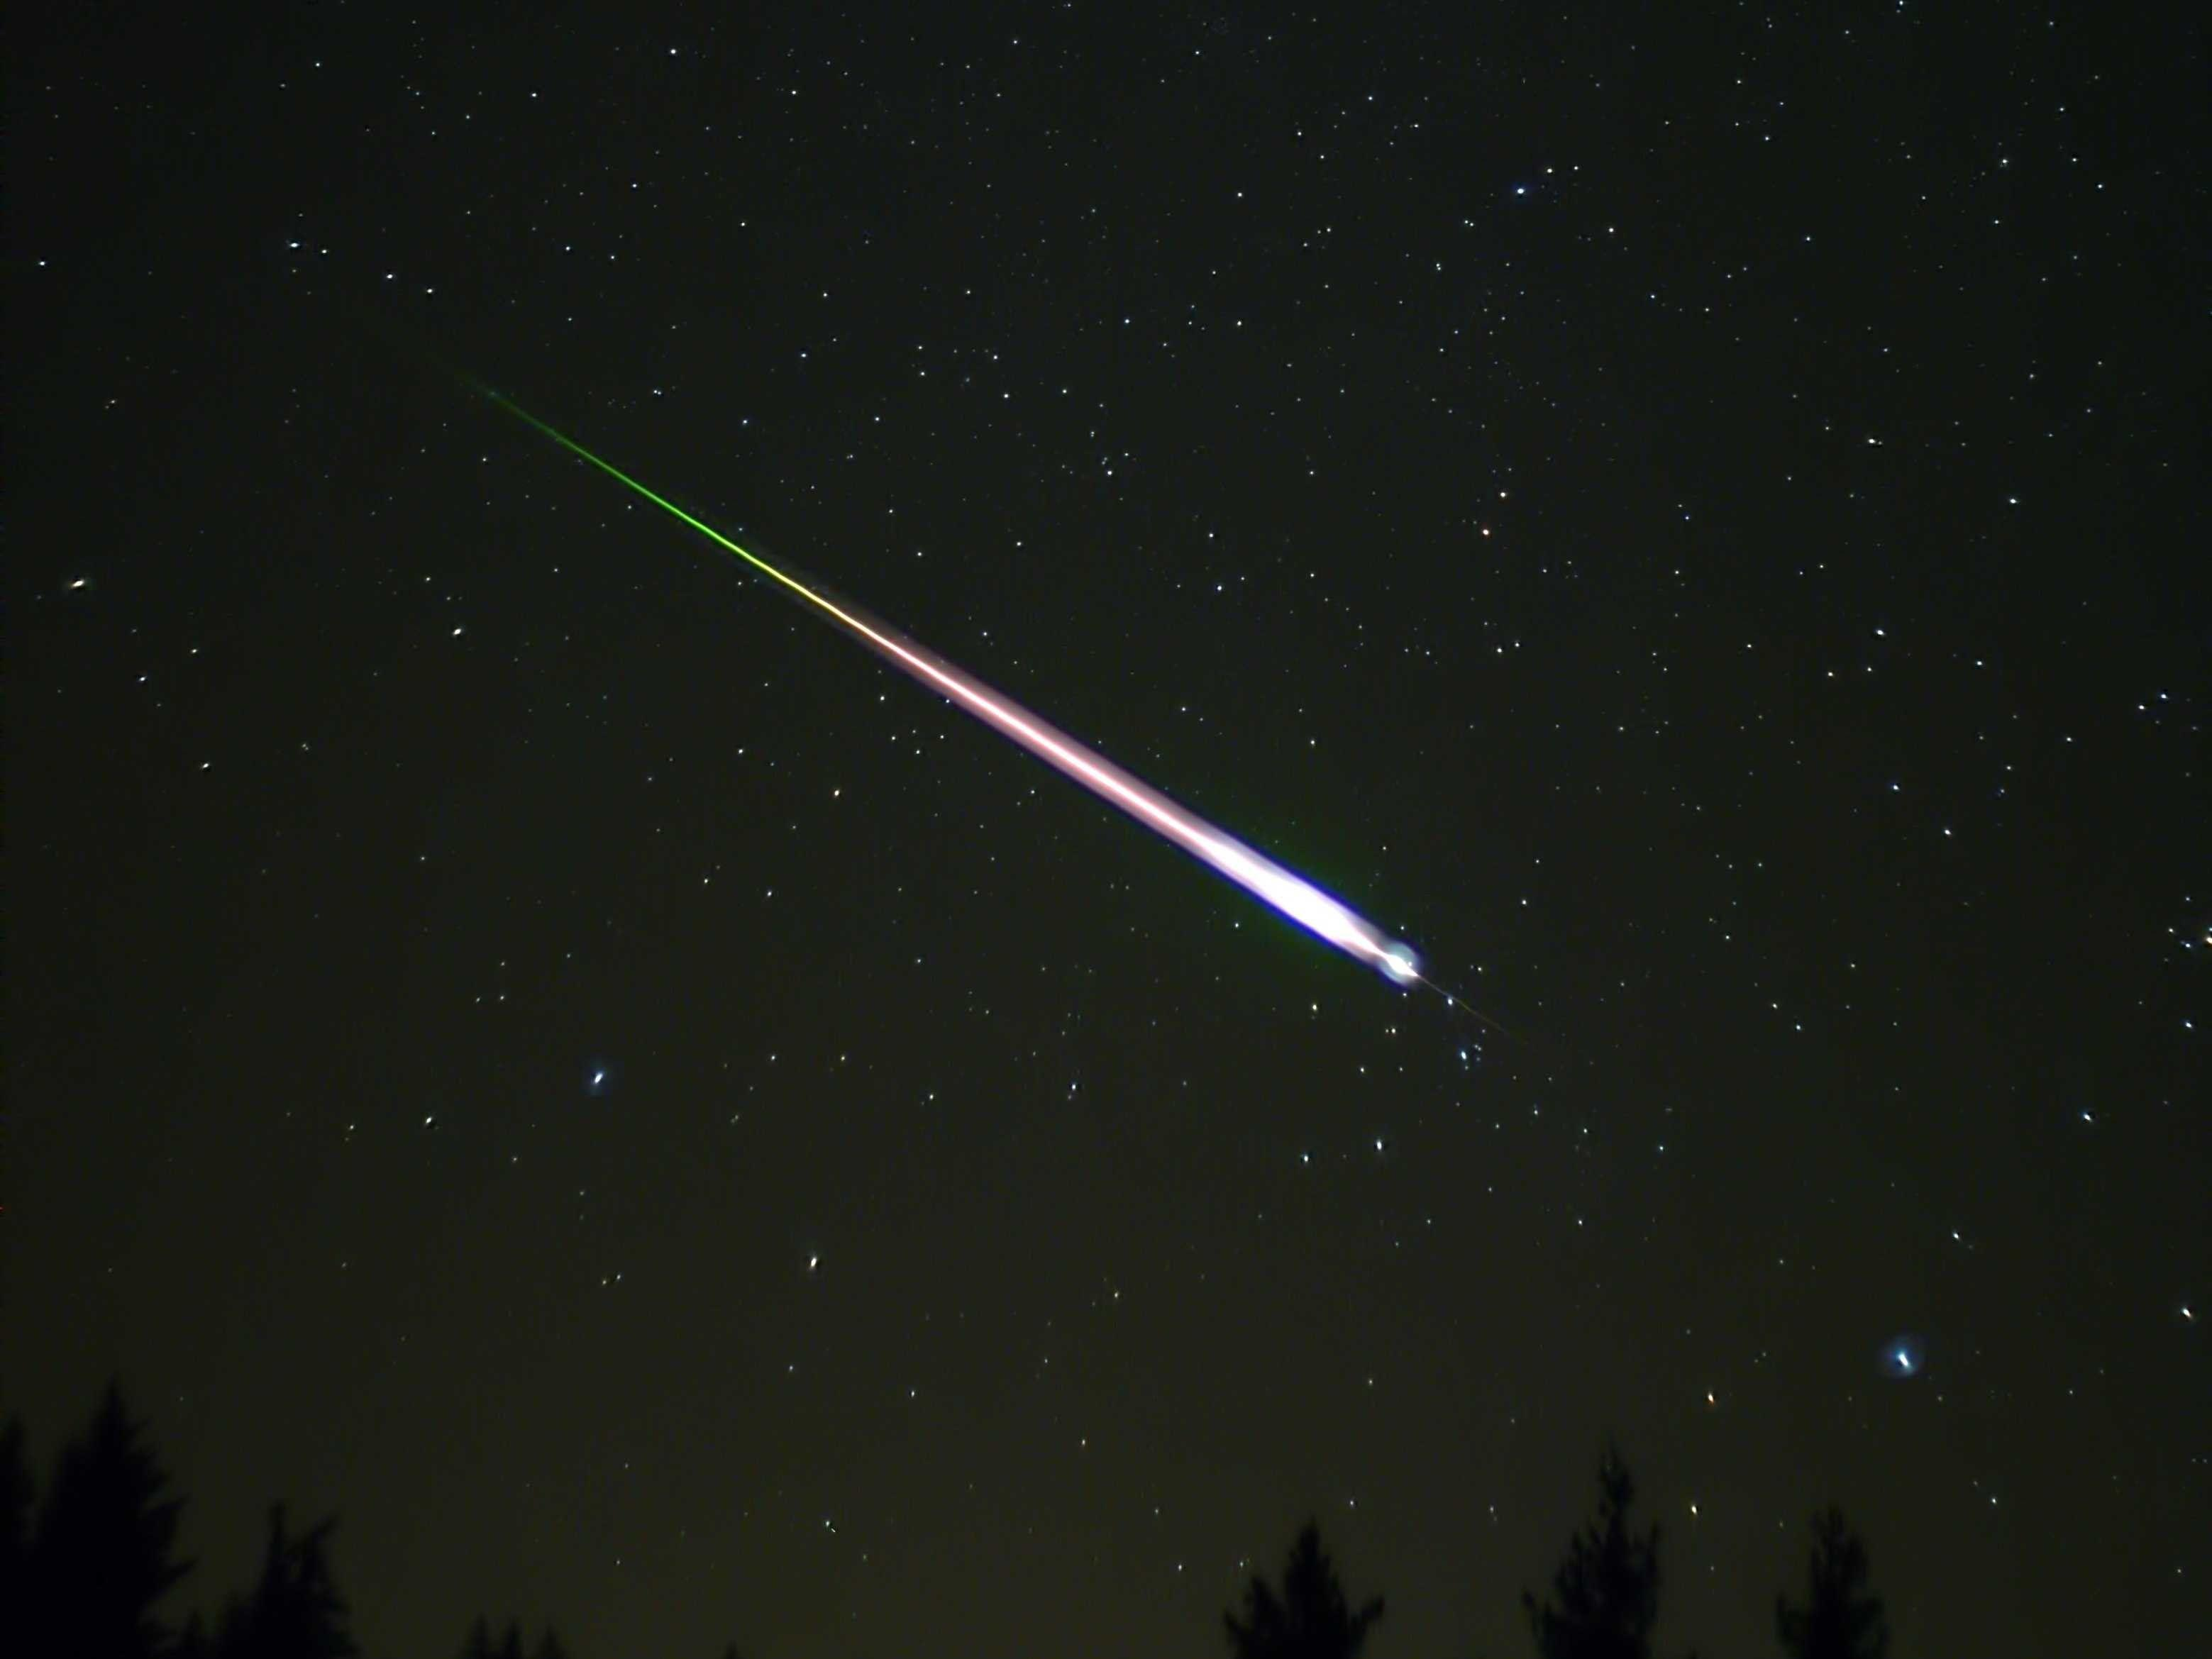 Real Meteor Shower Background - wallpaper.